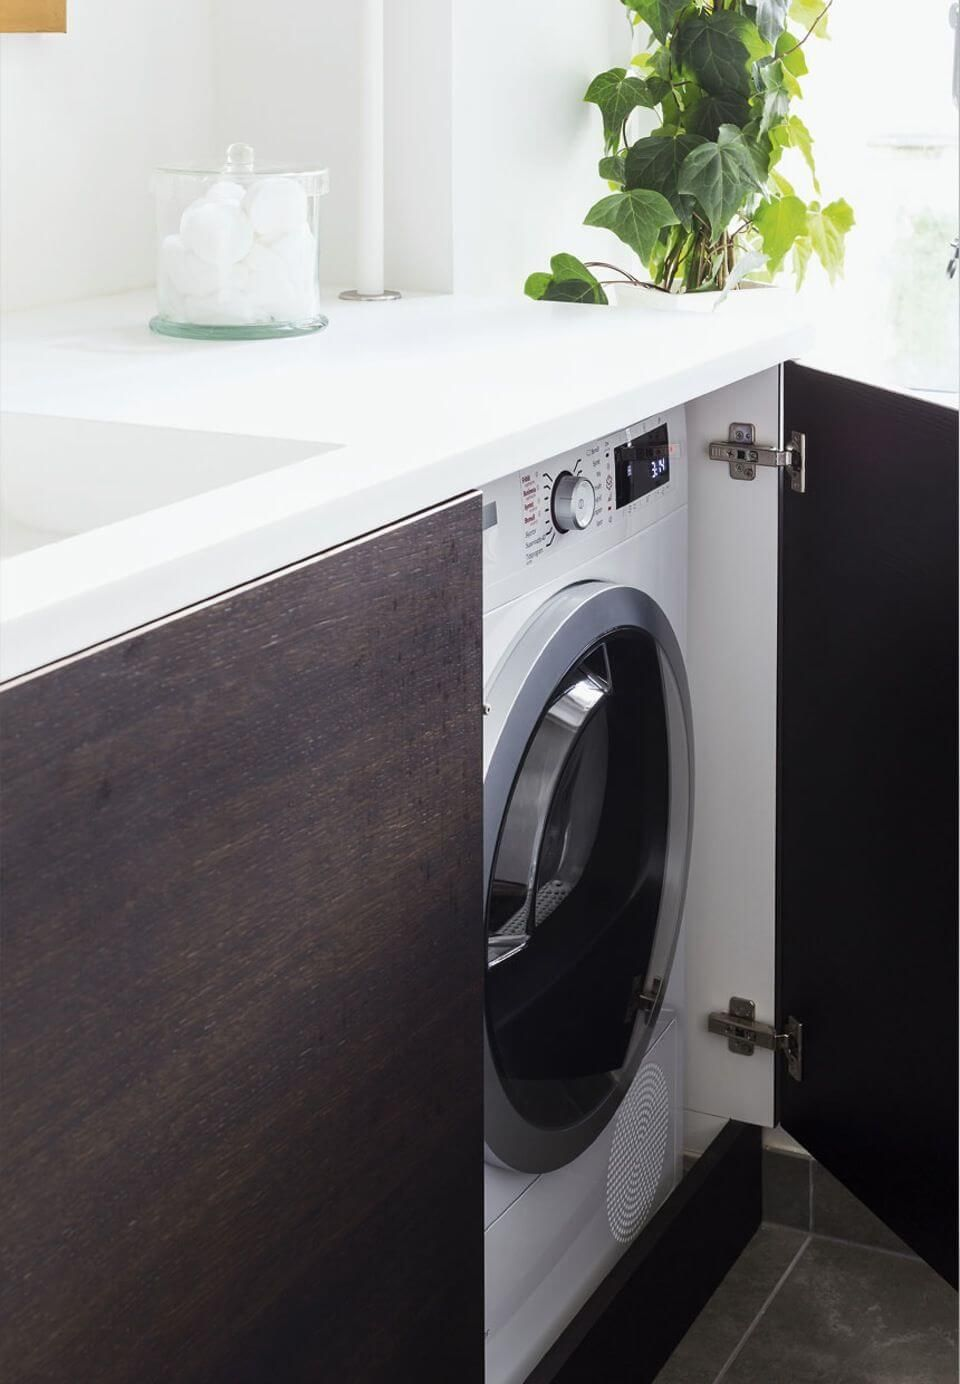 33 Clever Hideaway Projects for Small Homes   Badezimmer ... on Small Space Small Bathroom Ideas With Washing Machine id=26562